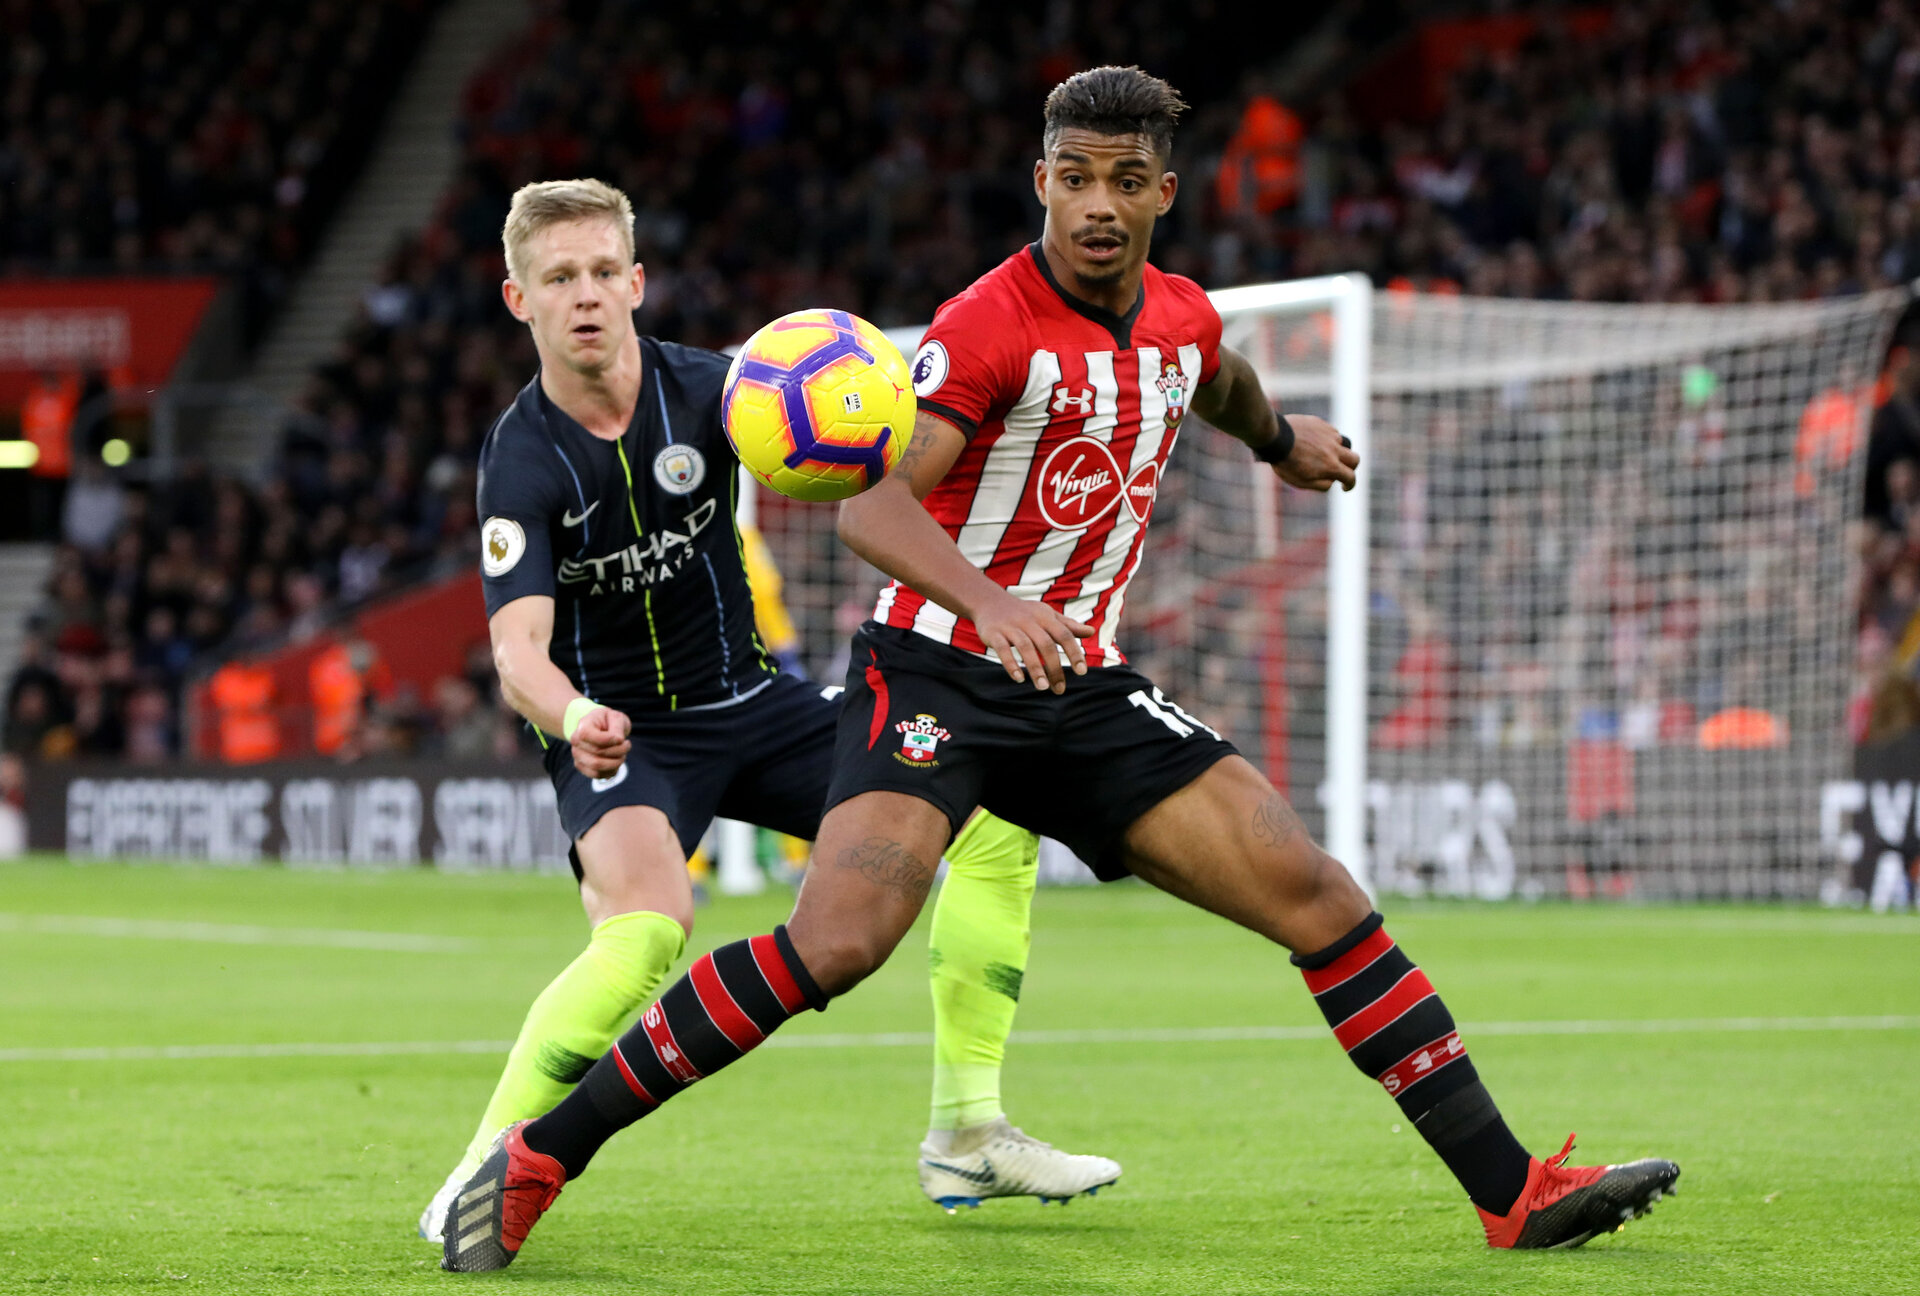 SOUTHAMPTON, ENGLAND - DECEMBER 30: Mario Lemina during the Premier League match between Southampton FC and Manchester City at St Mary's Stadium on December 29, 2018 in Southampton, United Kingdom. (Photo by Chris Moorhouse/Southampton FC via Getty Images)